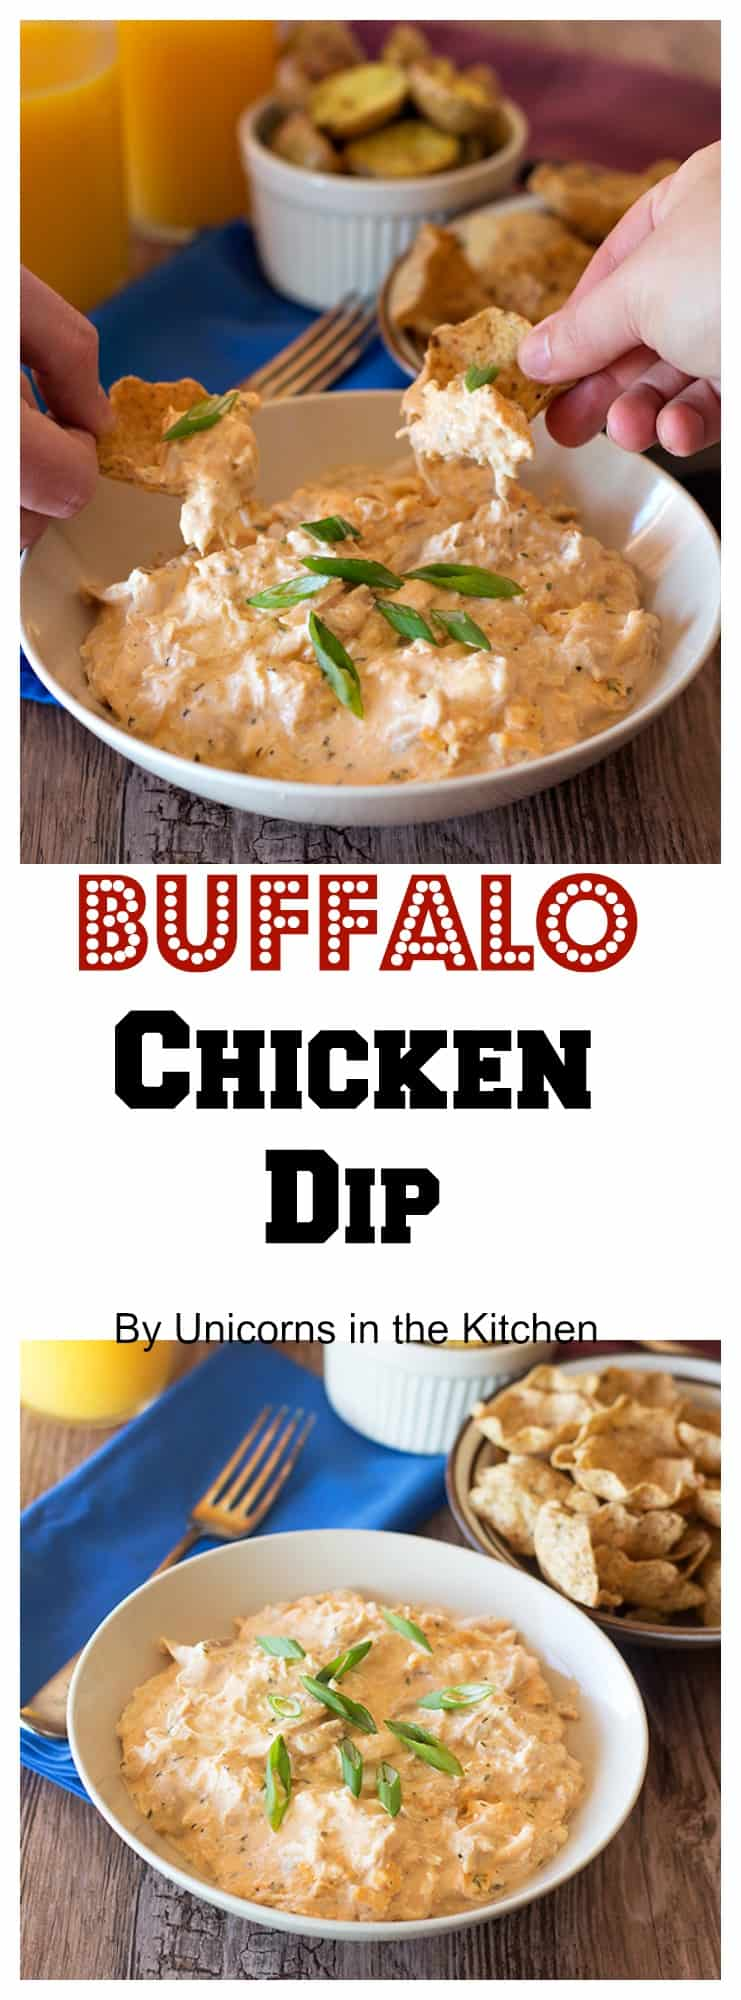 Perfect for the big game, this Buffalo Chicken Dip is a quick and delicious appetizer that is easy to make! It's everyone's favorite!